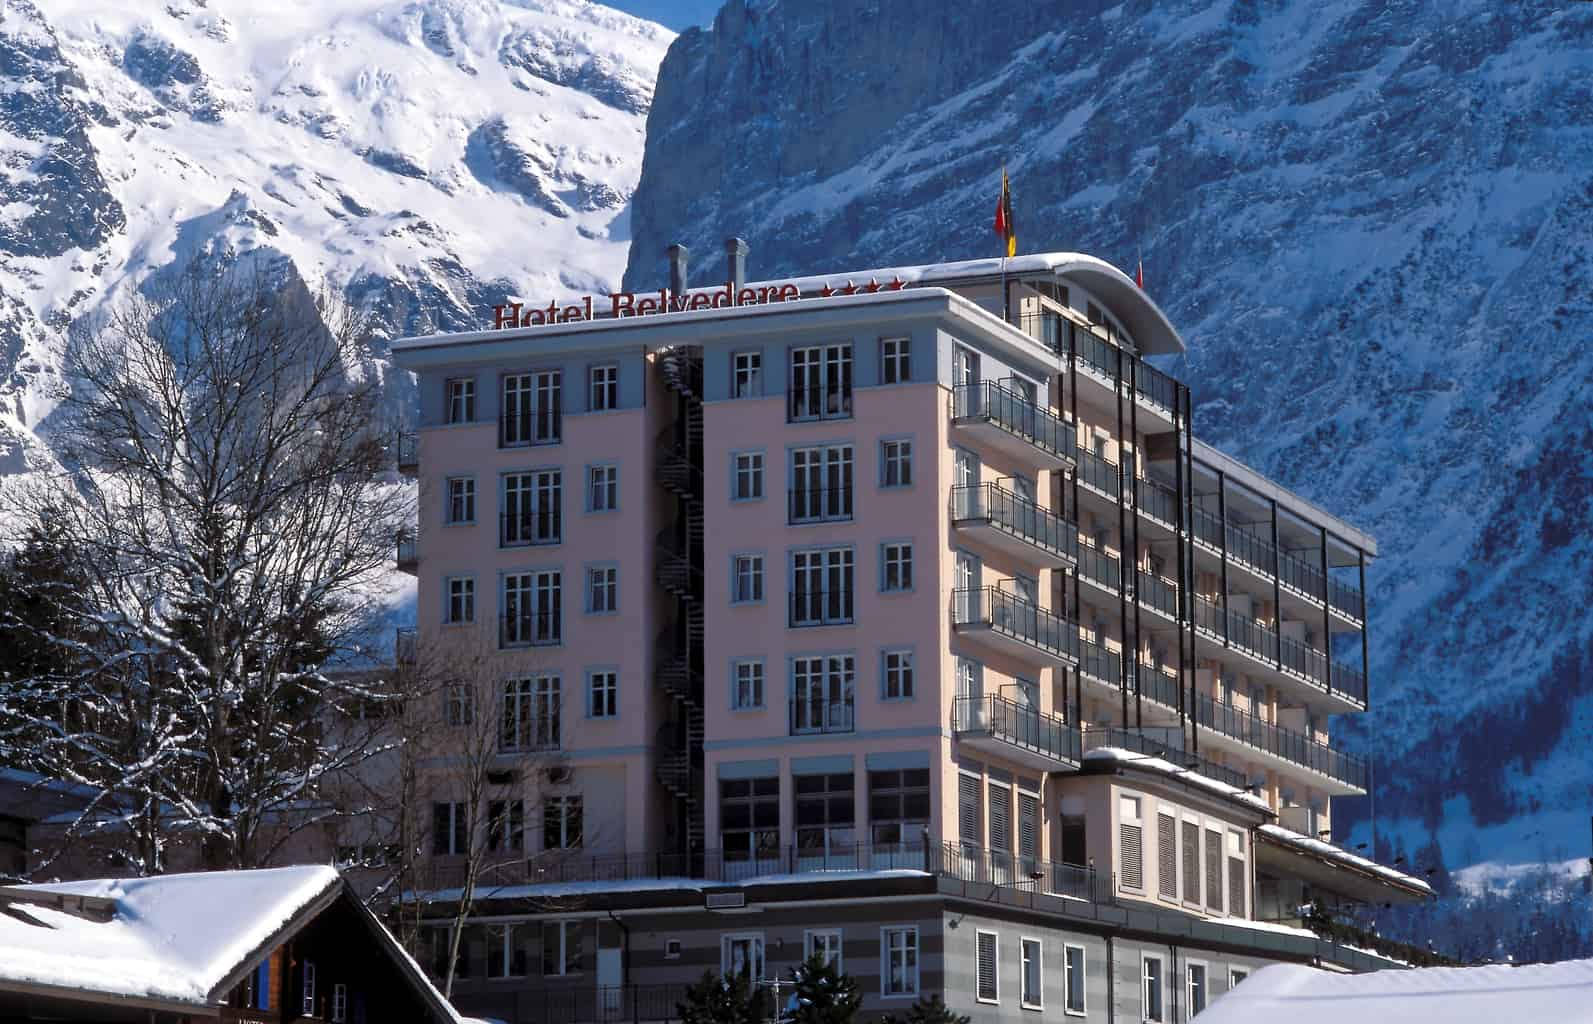 Hotel Belvedere location under the Eiger